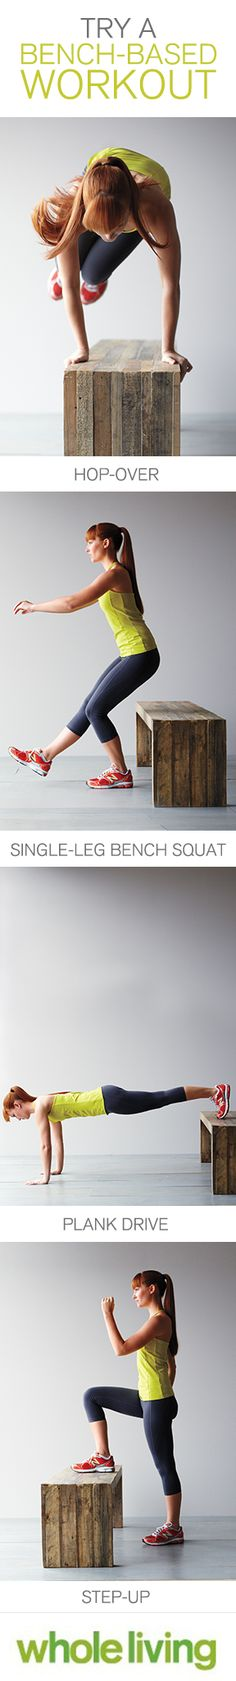 Get outside and hit the bench with this total-body workout, Wholeliving.com